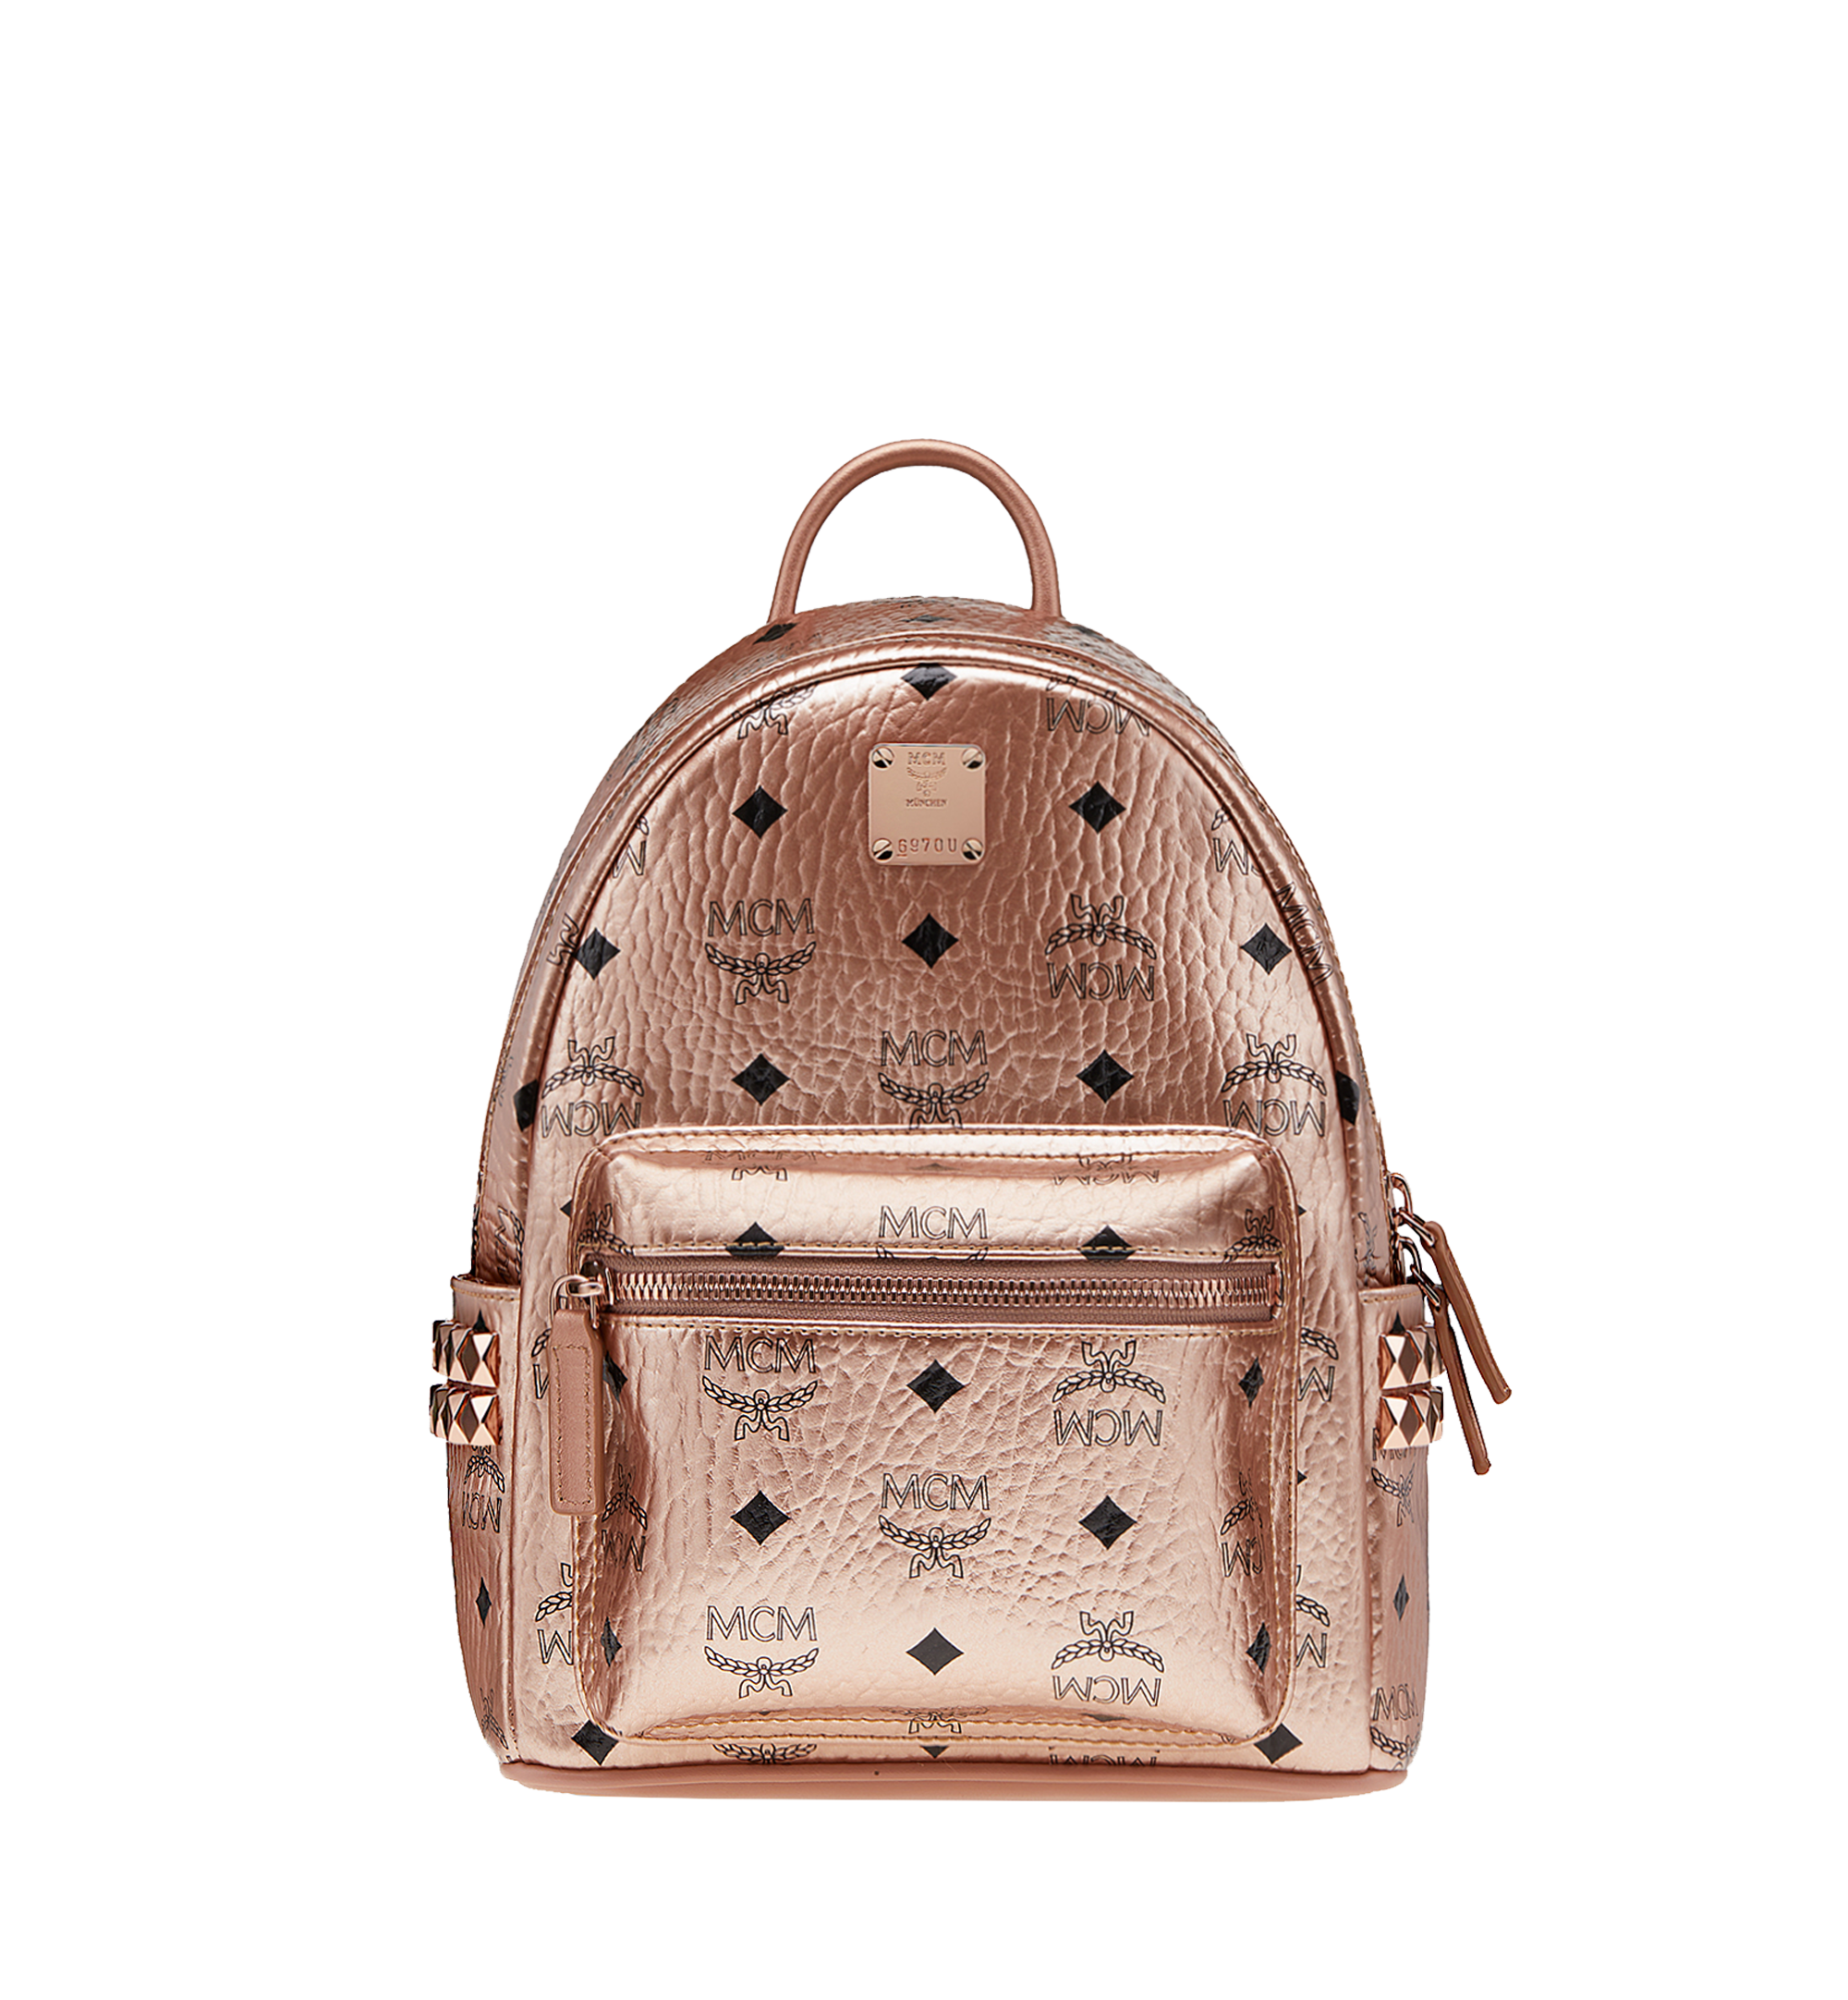 b803b6ed2d03 27 cm / 10.5 in Stark Side Studs Backpack in Visetos Champagne Gold ...